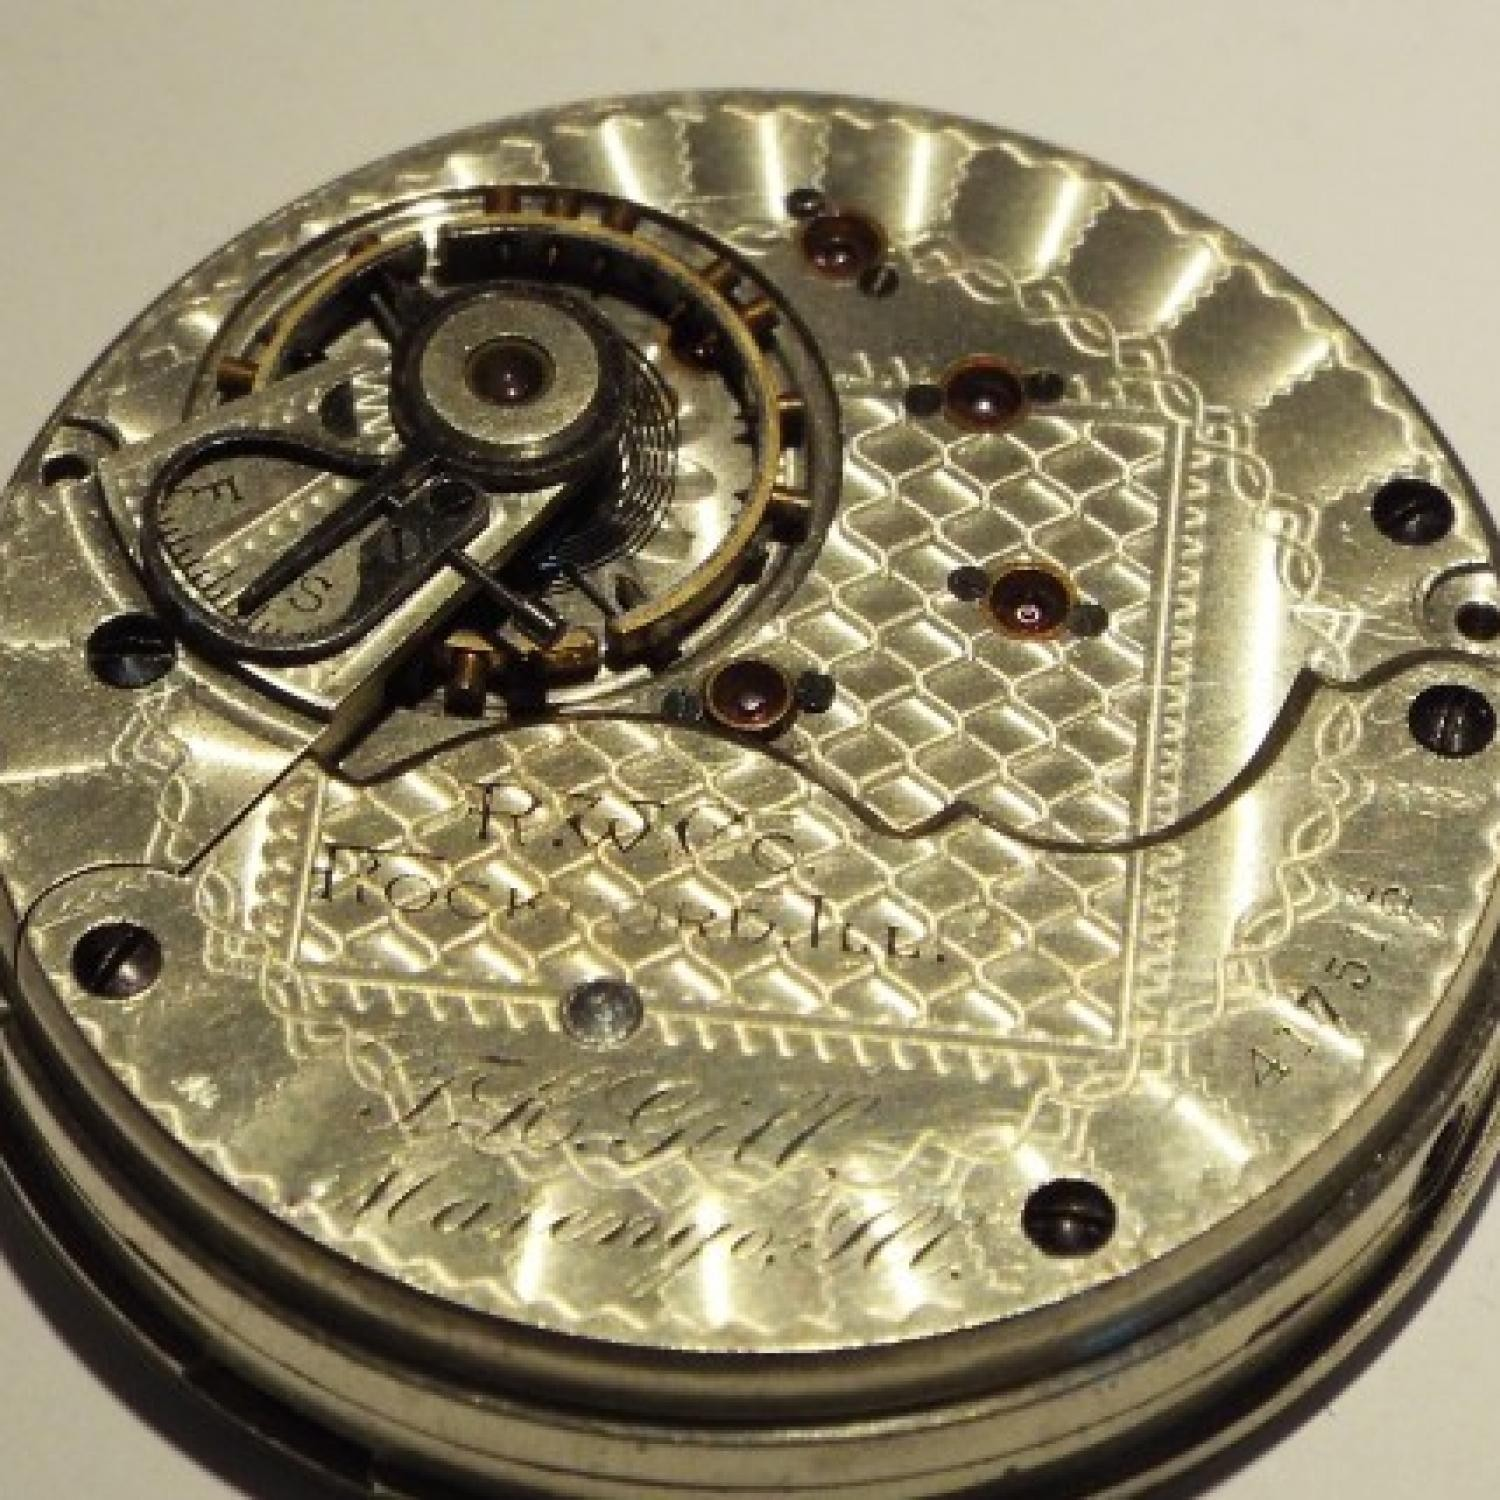 Image of Rockford 83 #417515 Movement